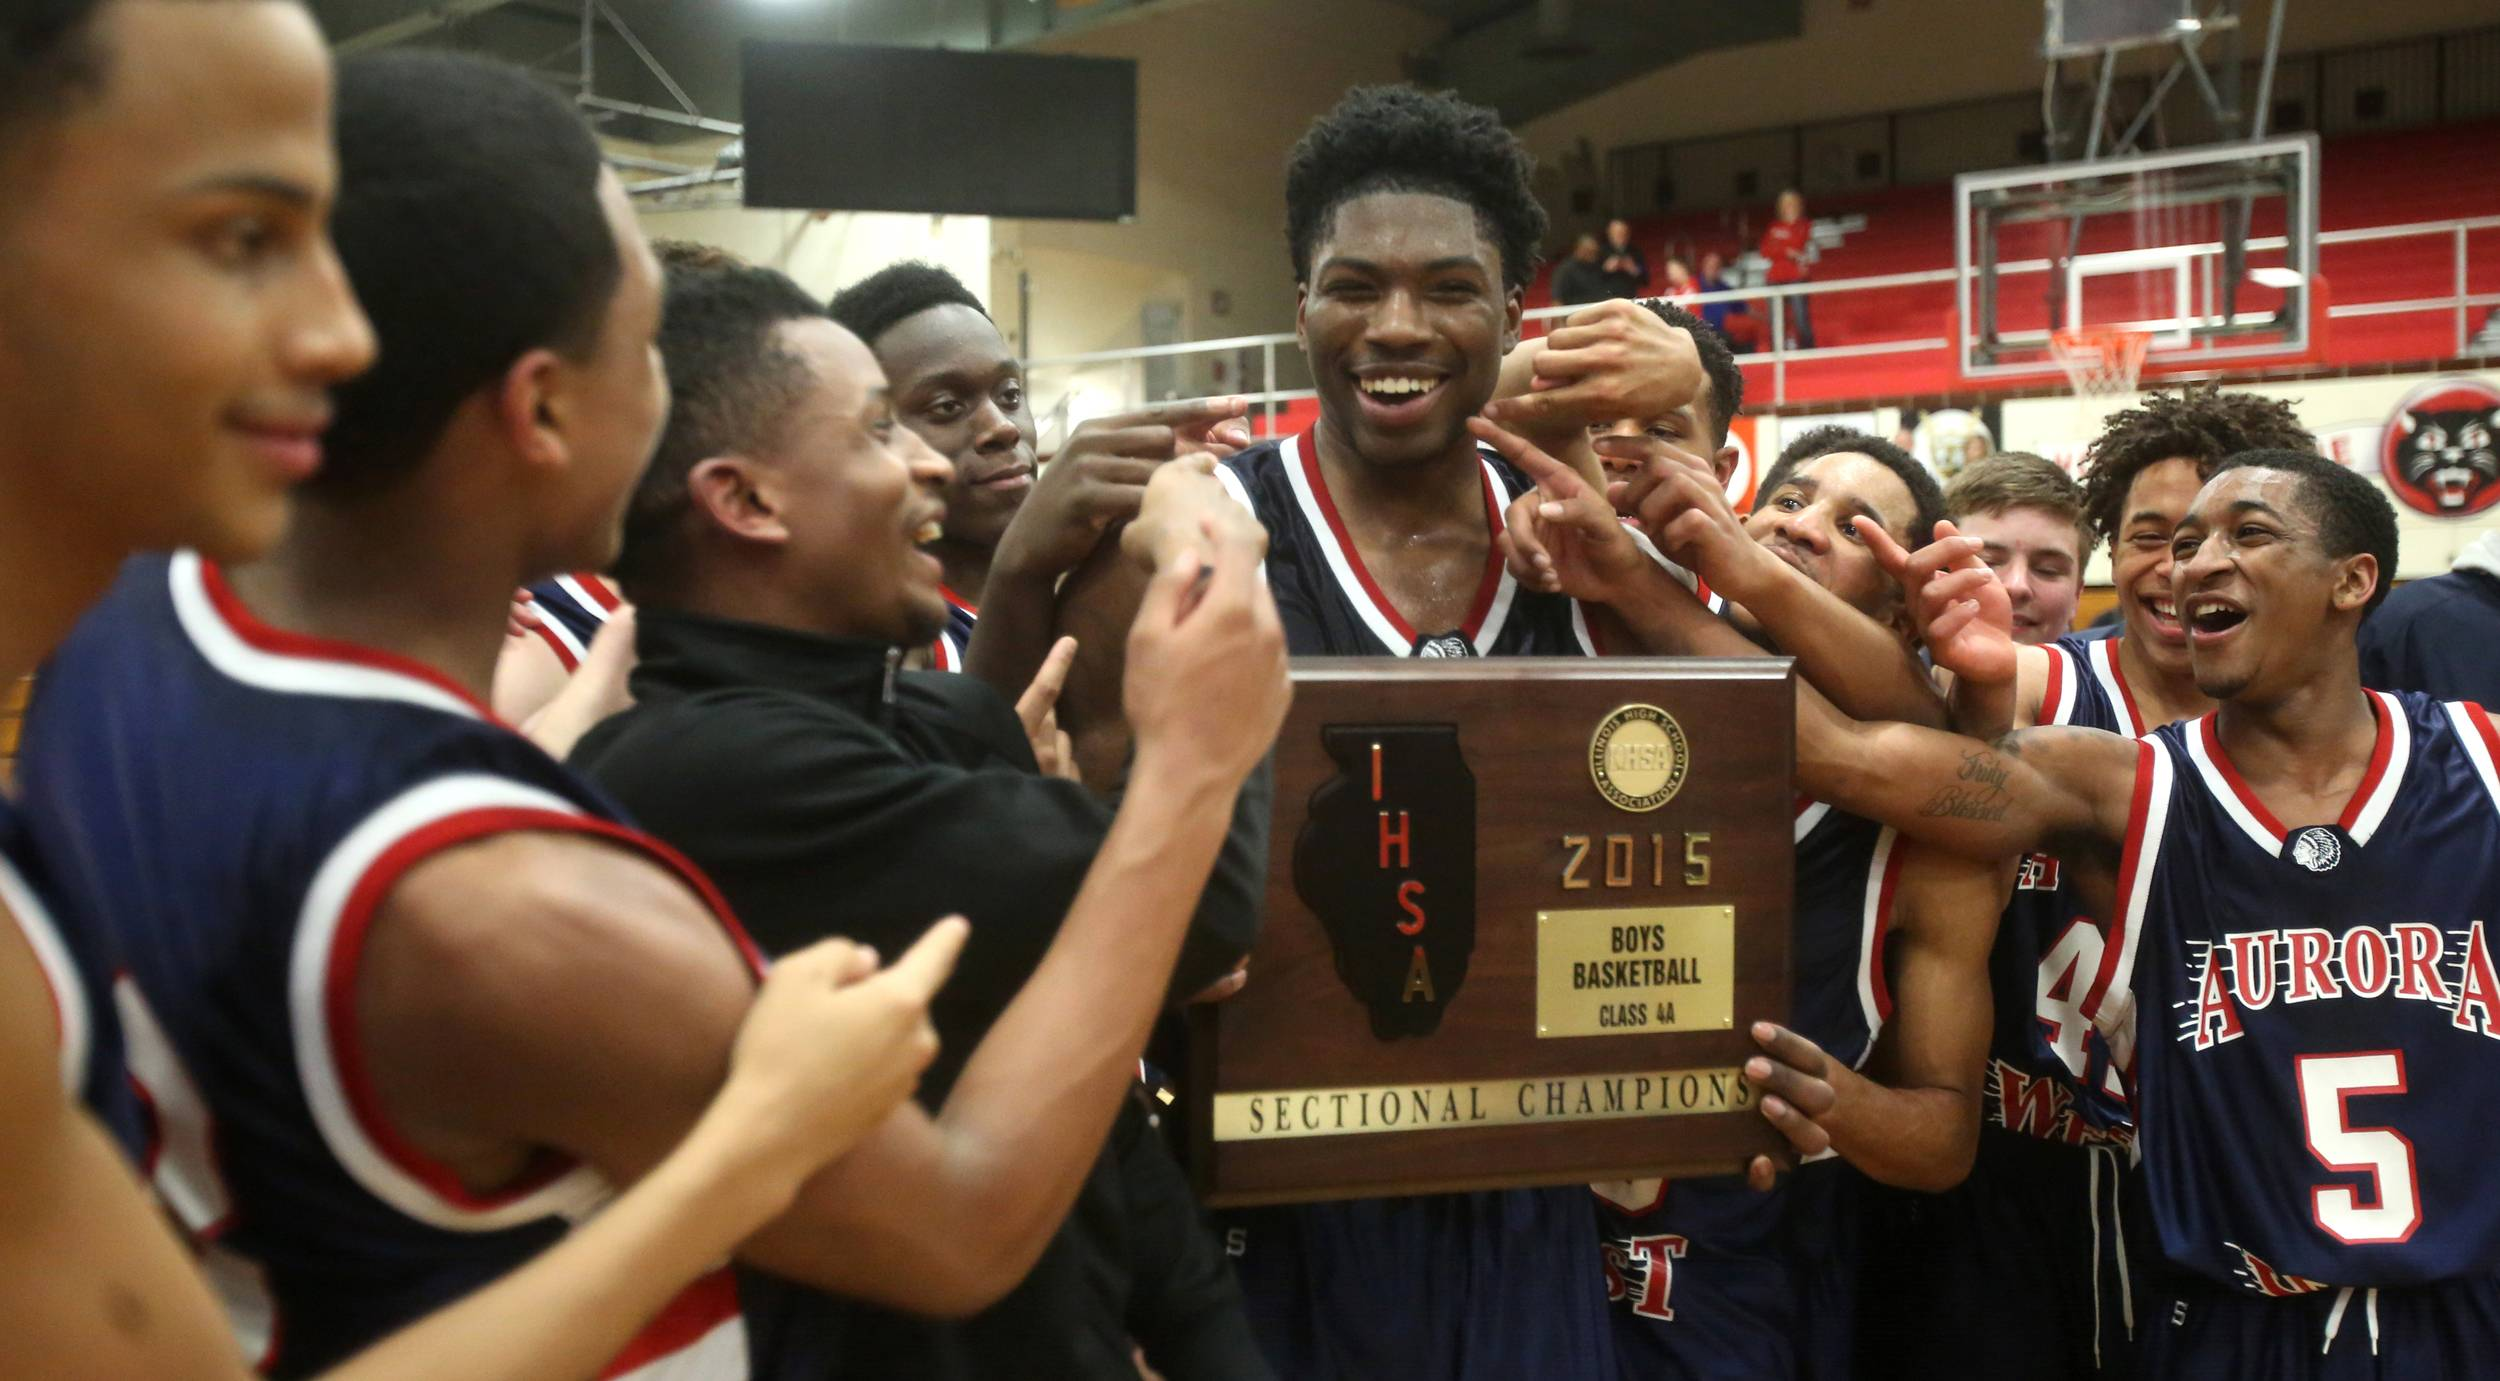 All fingers point to Roland Griffin, who celebrates with his teammates the Class 4A East Aurora boys basketball sectional championship. Griffin scored 31 points.